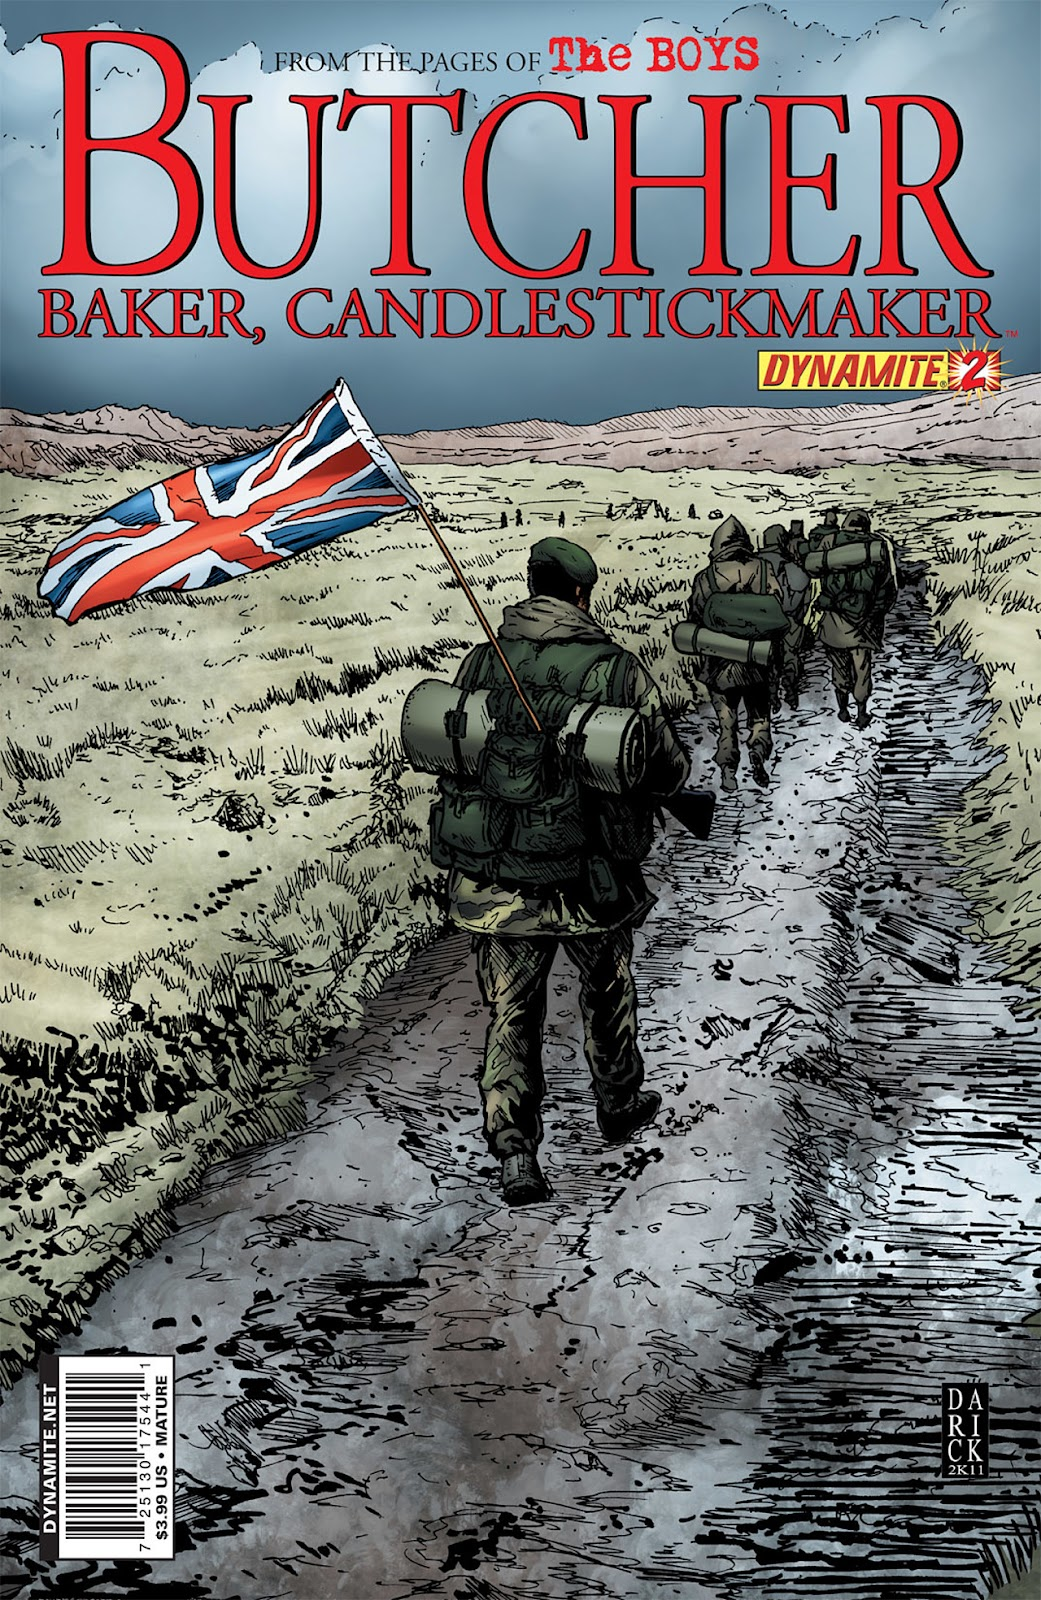 Read online The Boys: Butcher, Baker, Candlestickmaker comic -  Issue #2 - 1